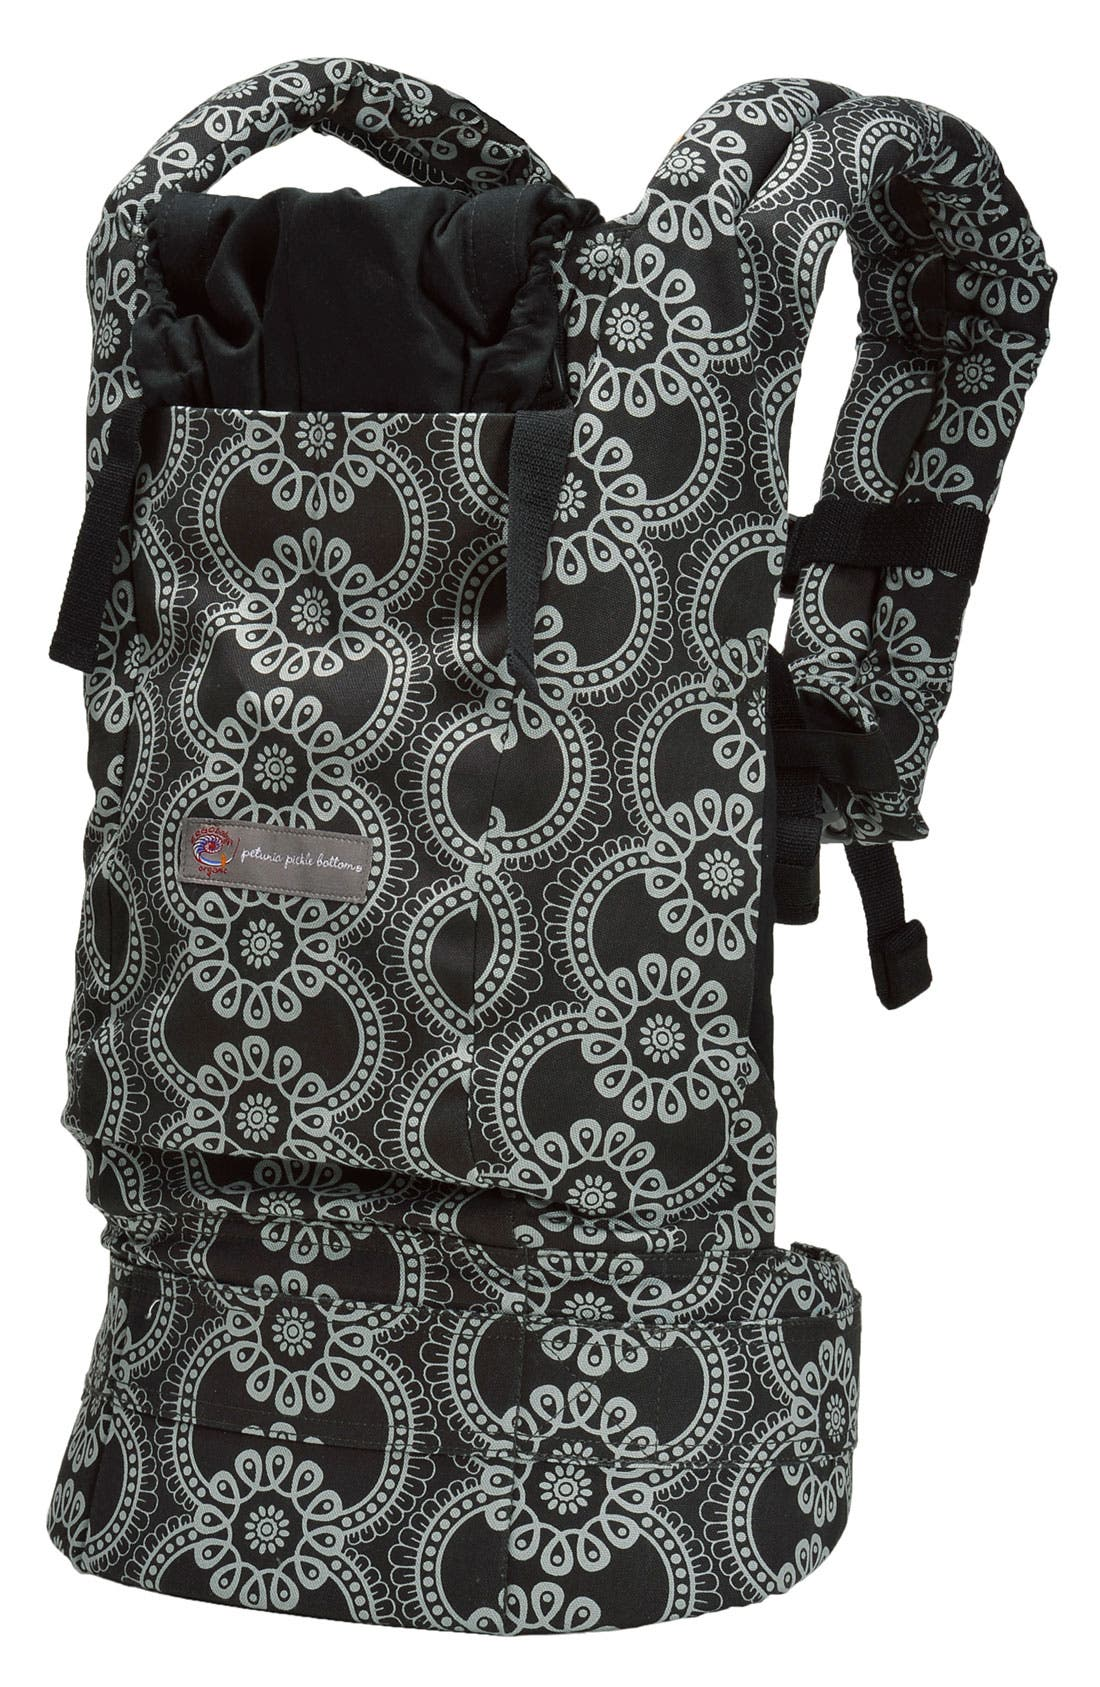 Baby Carrier with Petunia Pickle Bottom Print,                             Main thumbnail 1, color,                             001